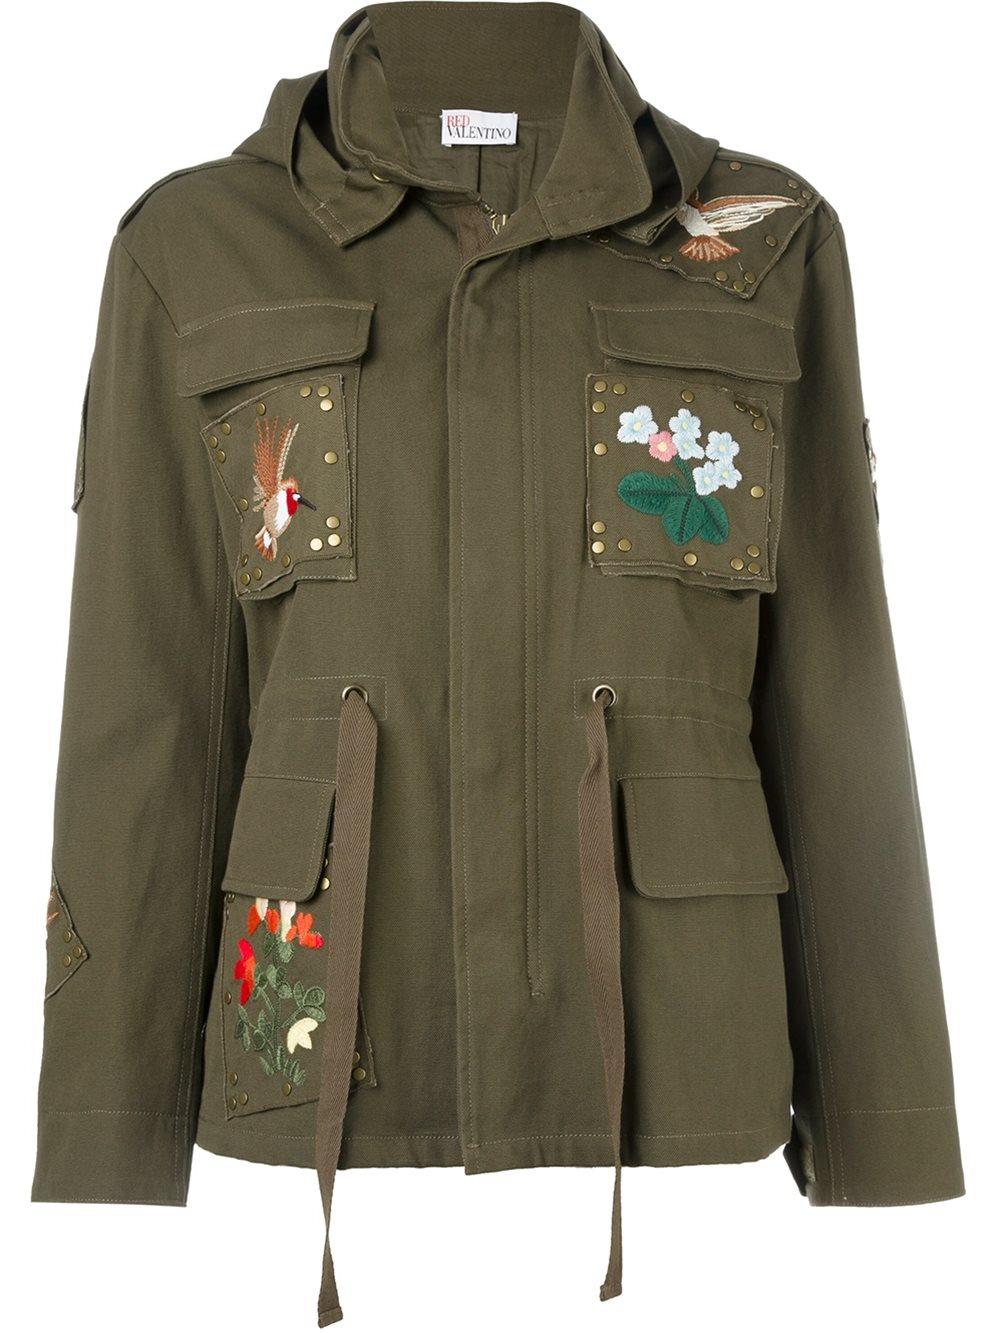 Red valentino embroidered military jacket in blue green